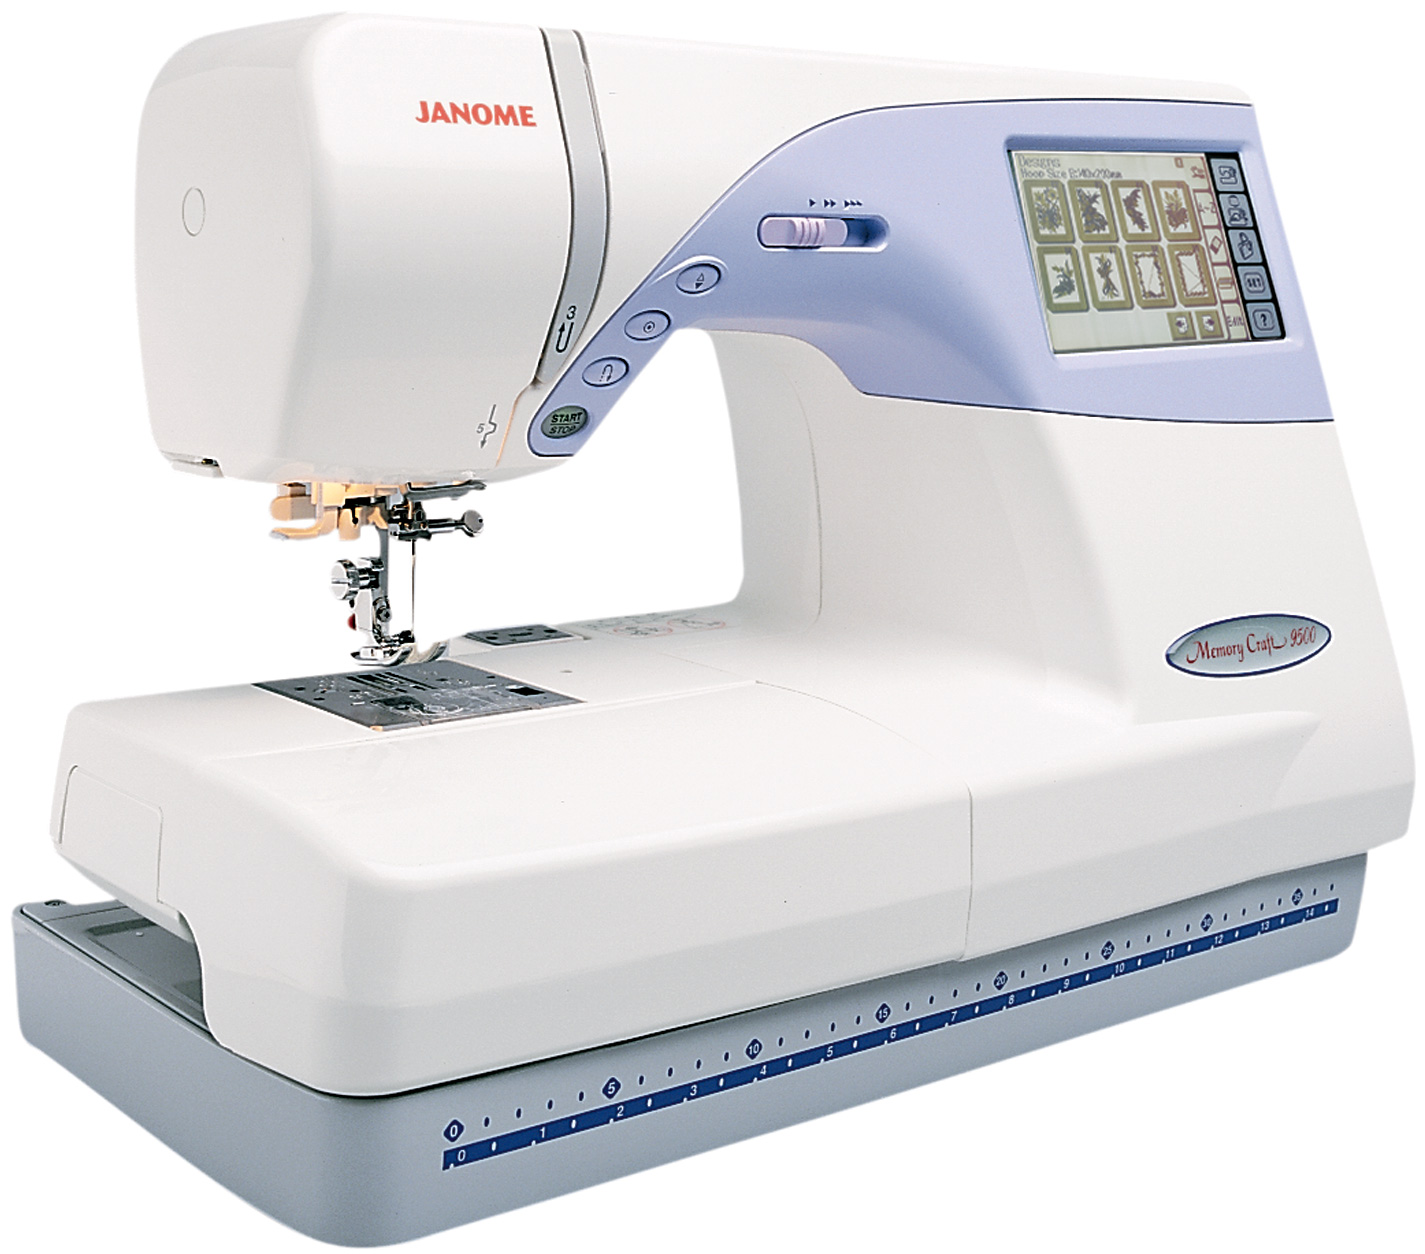 Janome memory craft computerized embroidery sewing